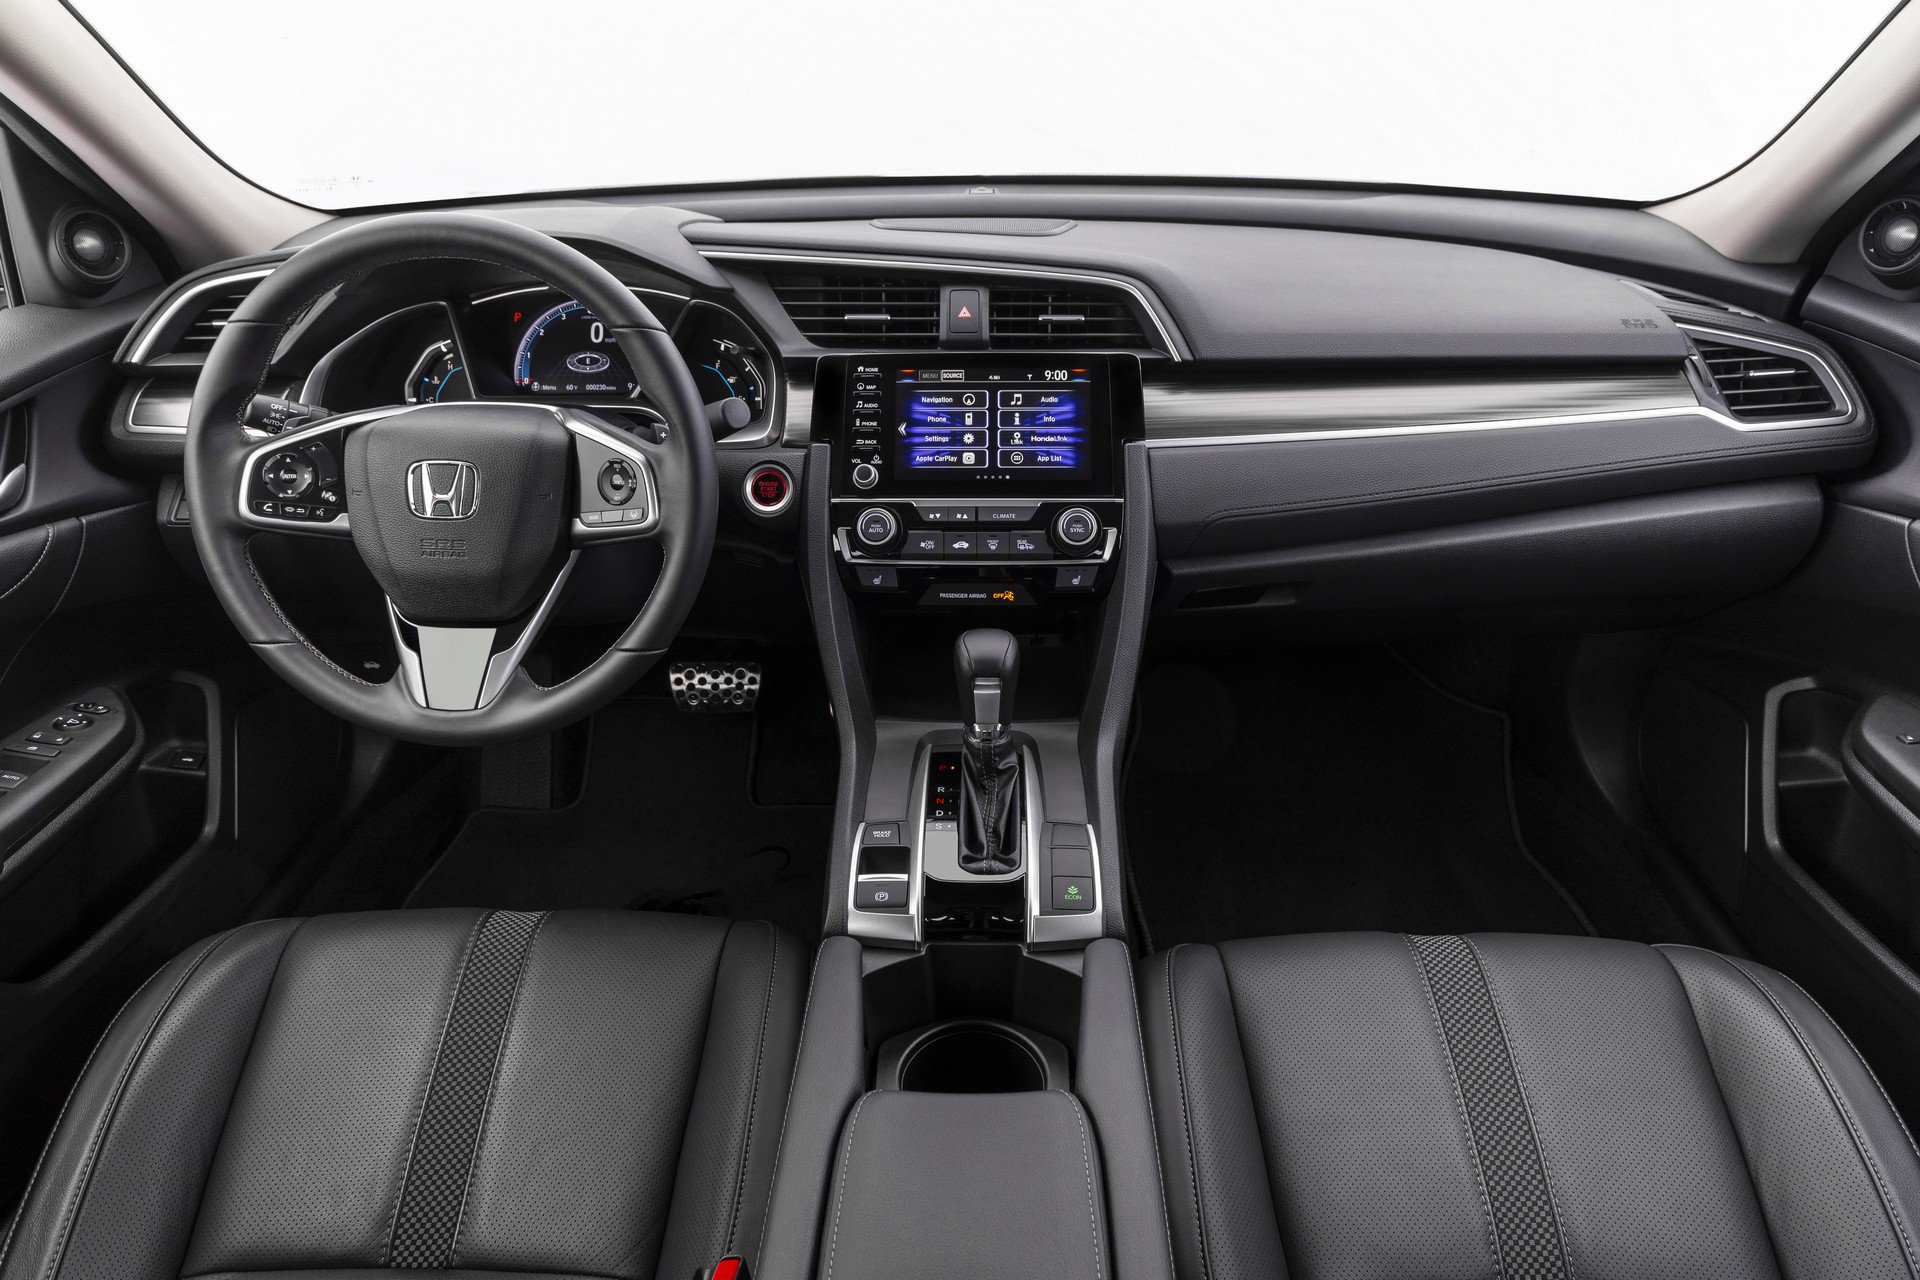 2020-honda-civic-5.jpg